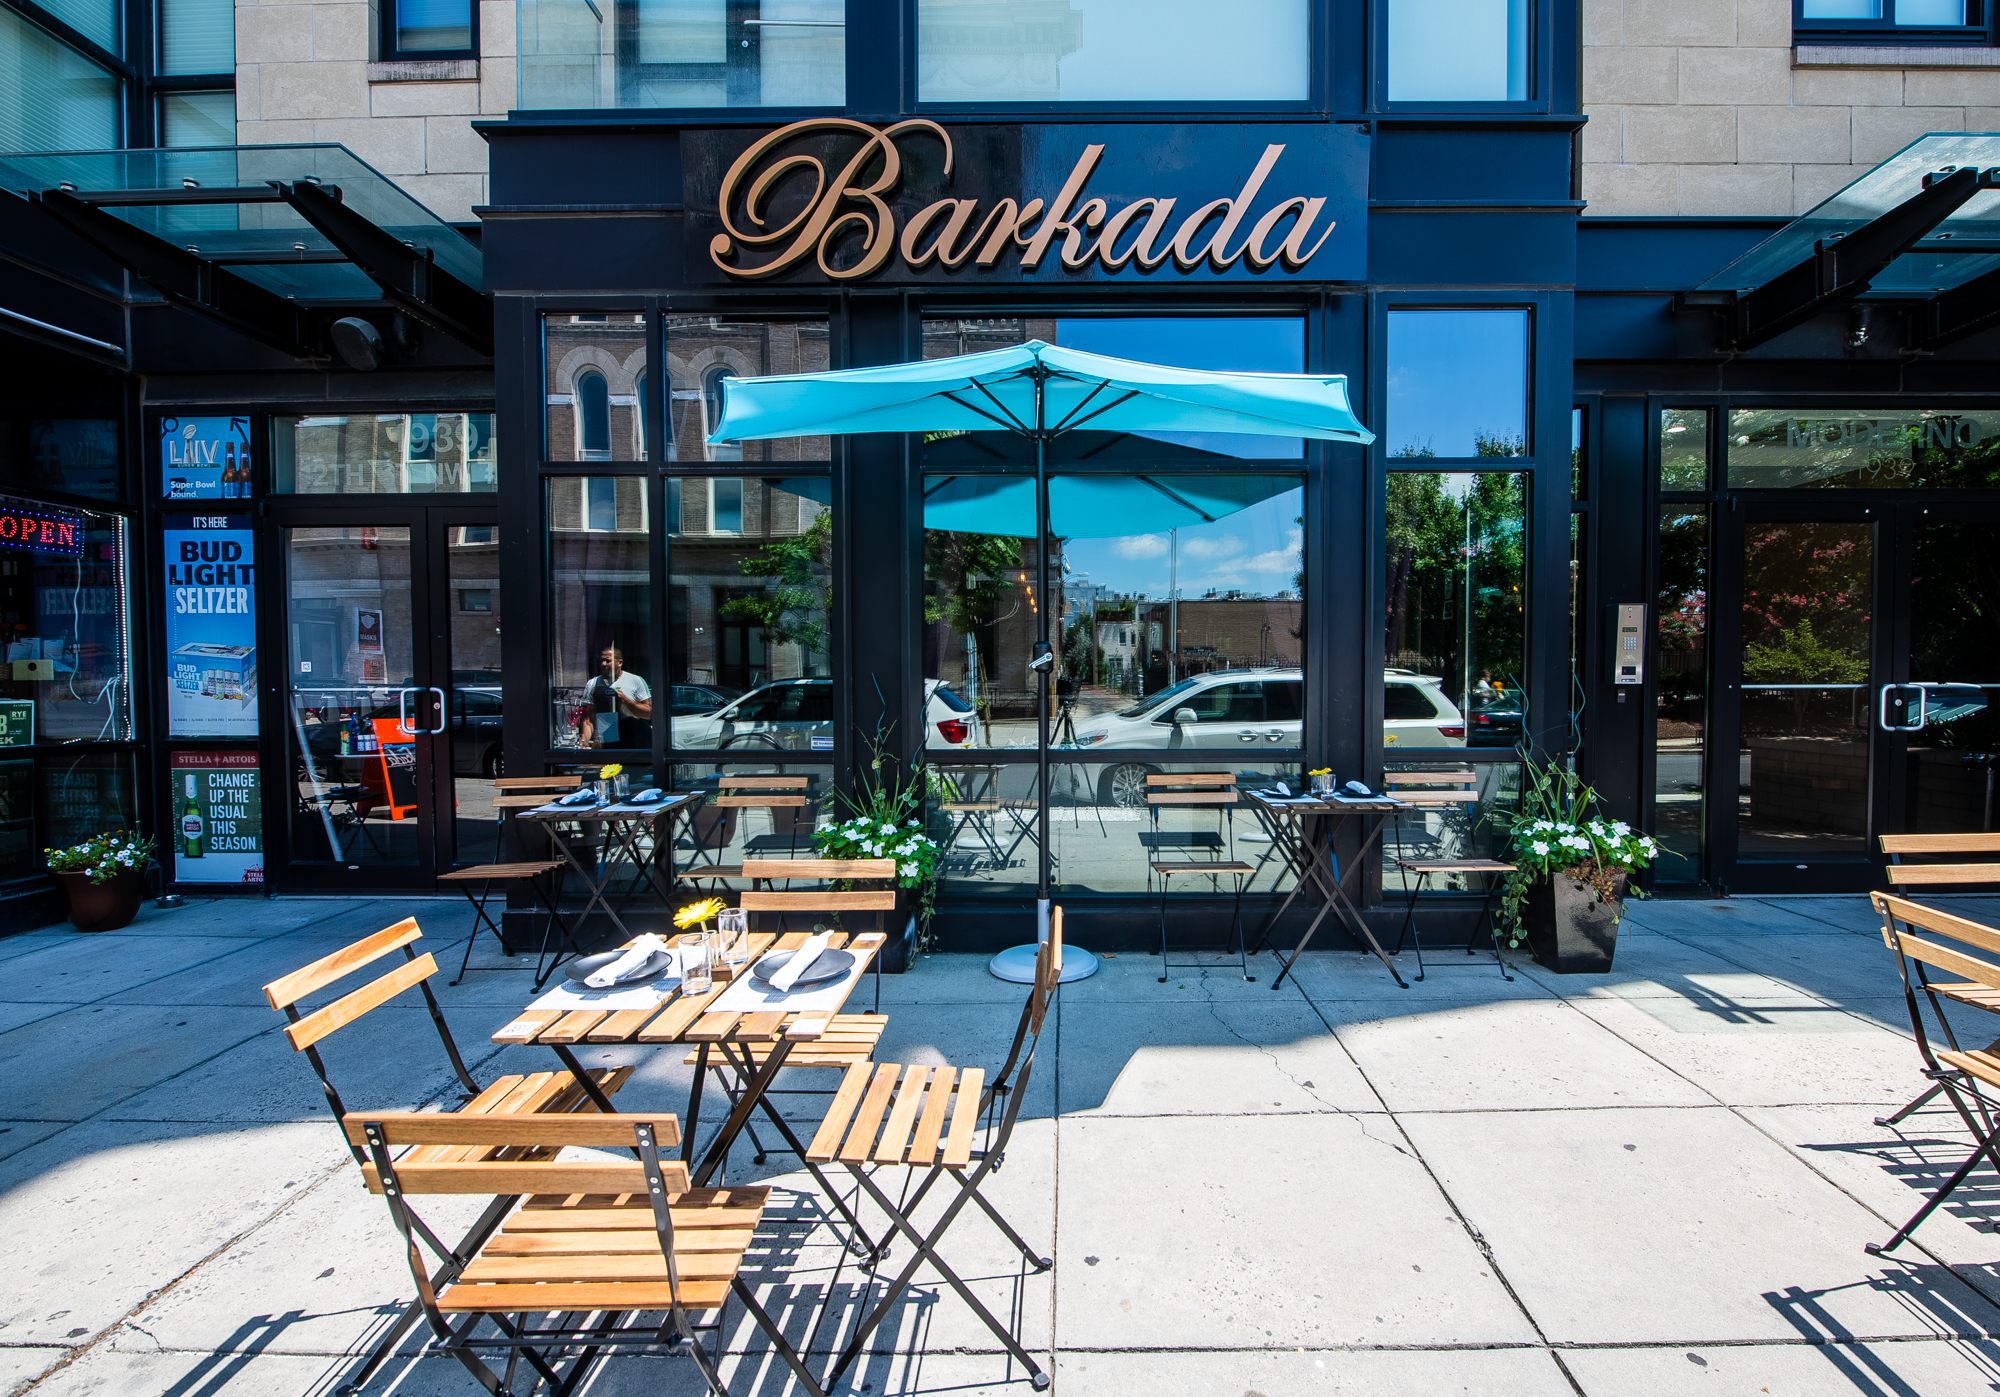 Barkada officially opens tonight at 12th and U Streets NW